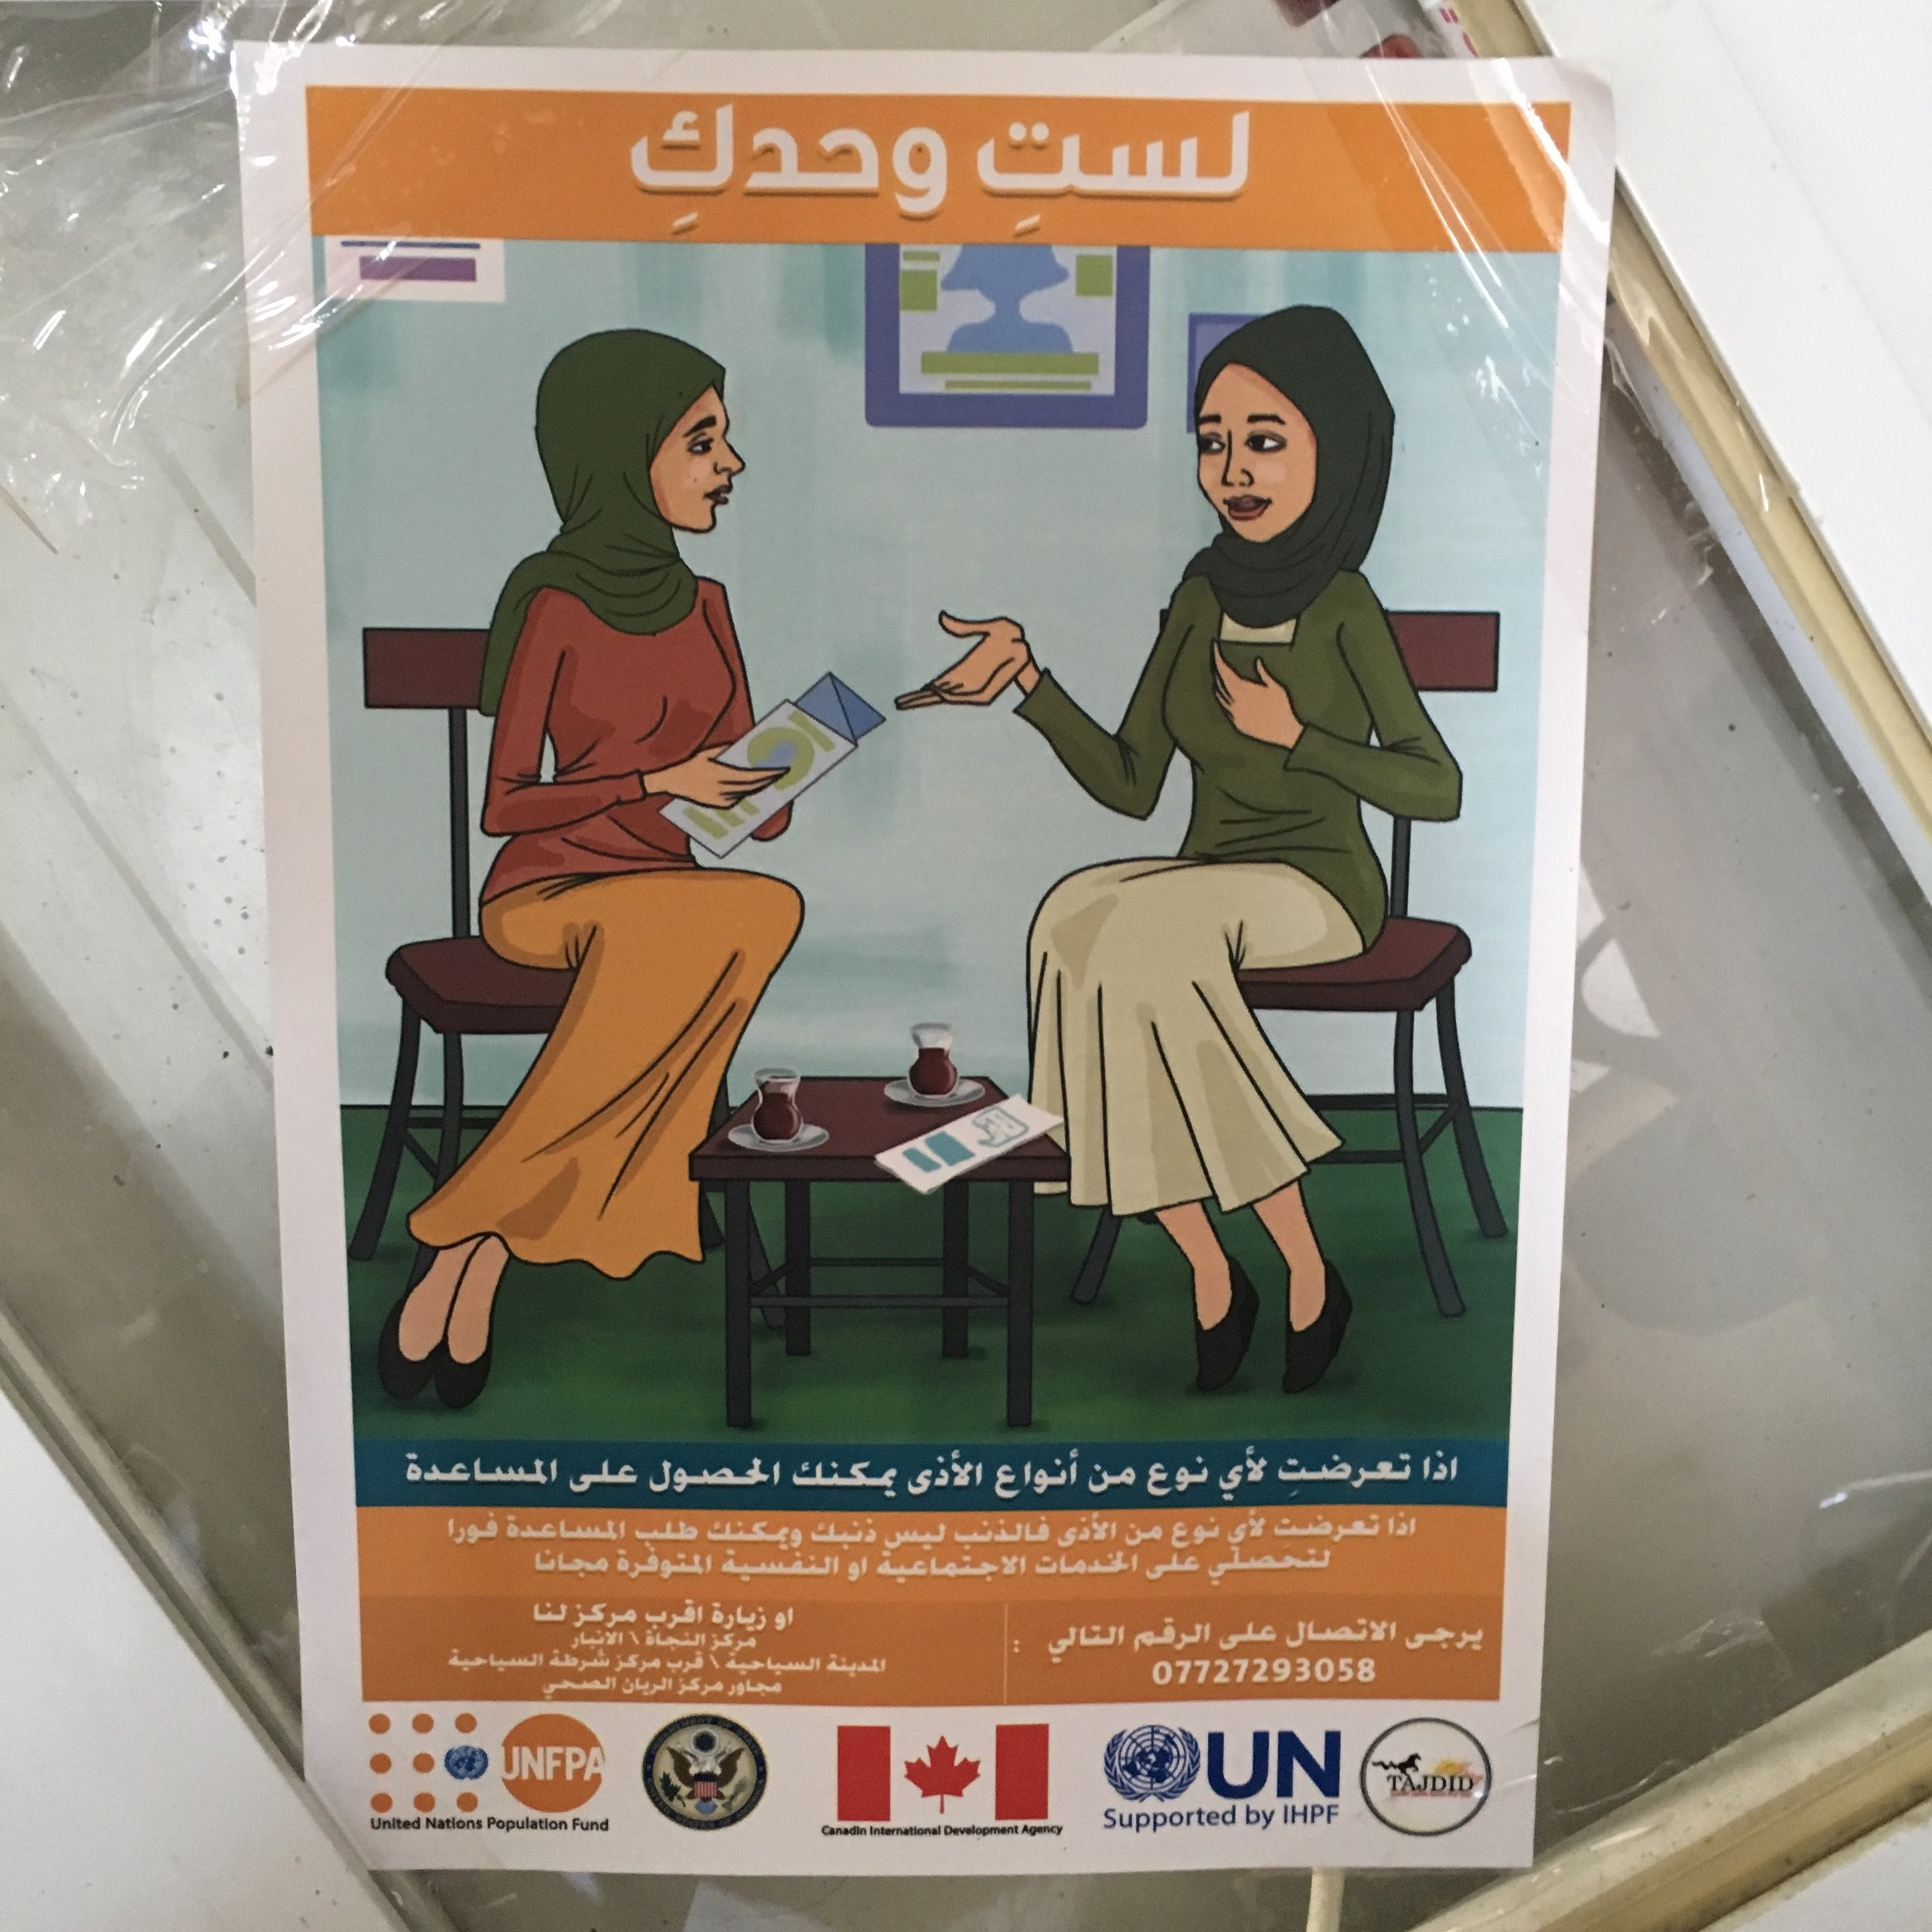 Iraqi women in conflict-affected areas are suffering grave acts of violence. This poster in an IDP camp informs women where they can seek help.